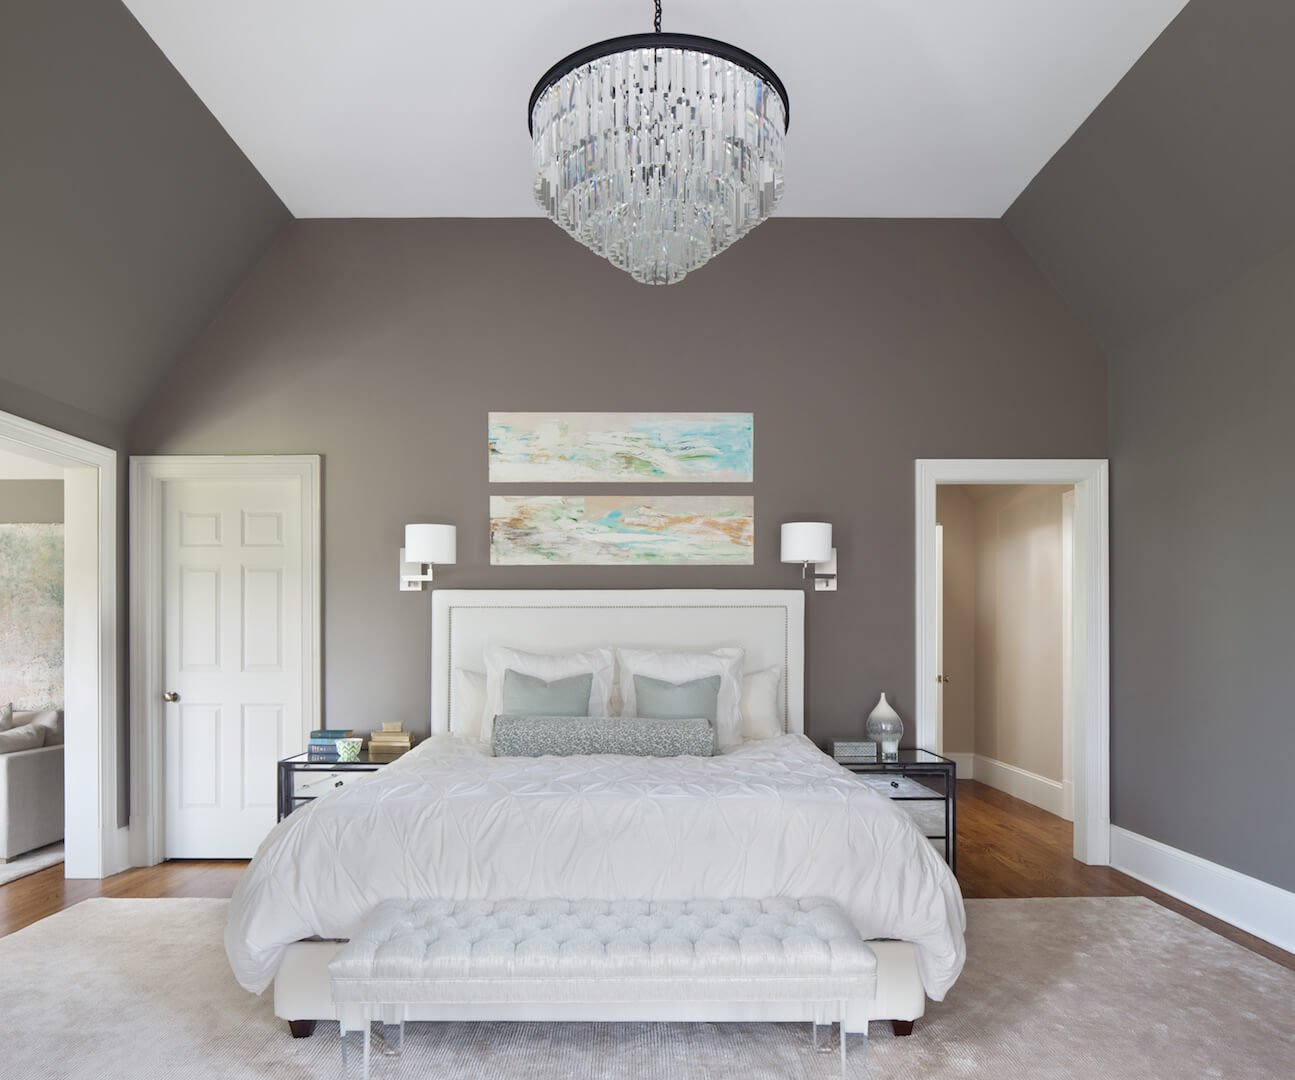 The primary suite has a delicate, light color palette with a gray-green rich wall color and mint accents. Bolder, yet still elegant colors are brought into the room via the two paintings above the head board. Through the archway on the left is the adjoining sitting room.